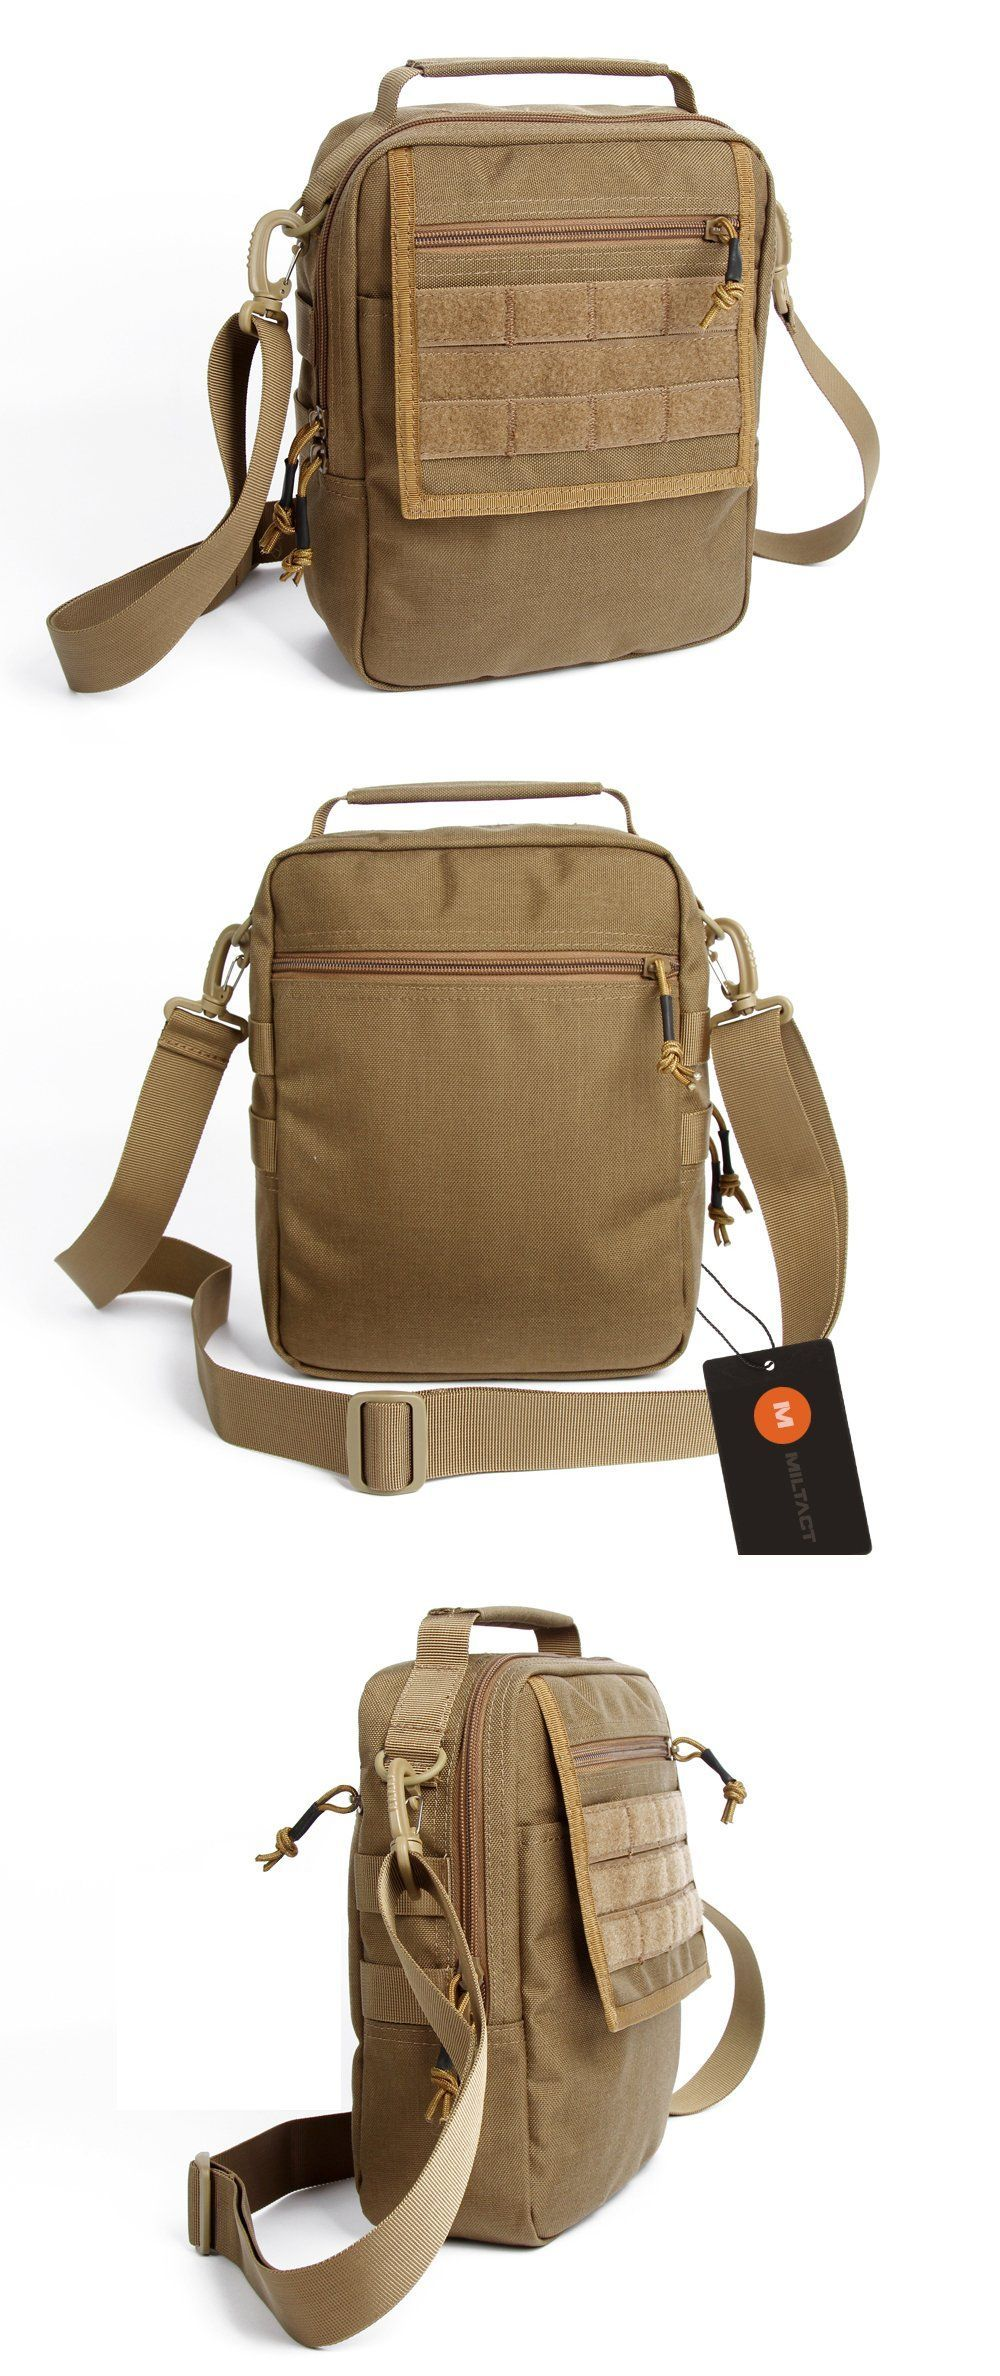 Tactical MOLLE Messenger Bag For Work Leisure